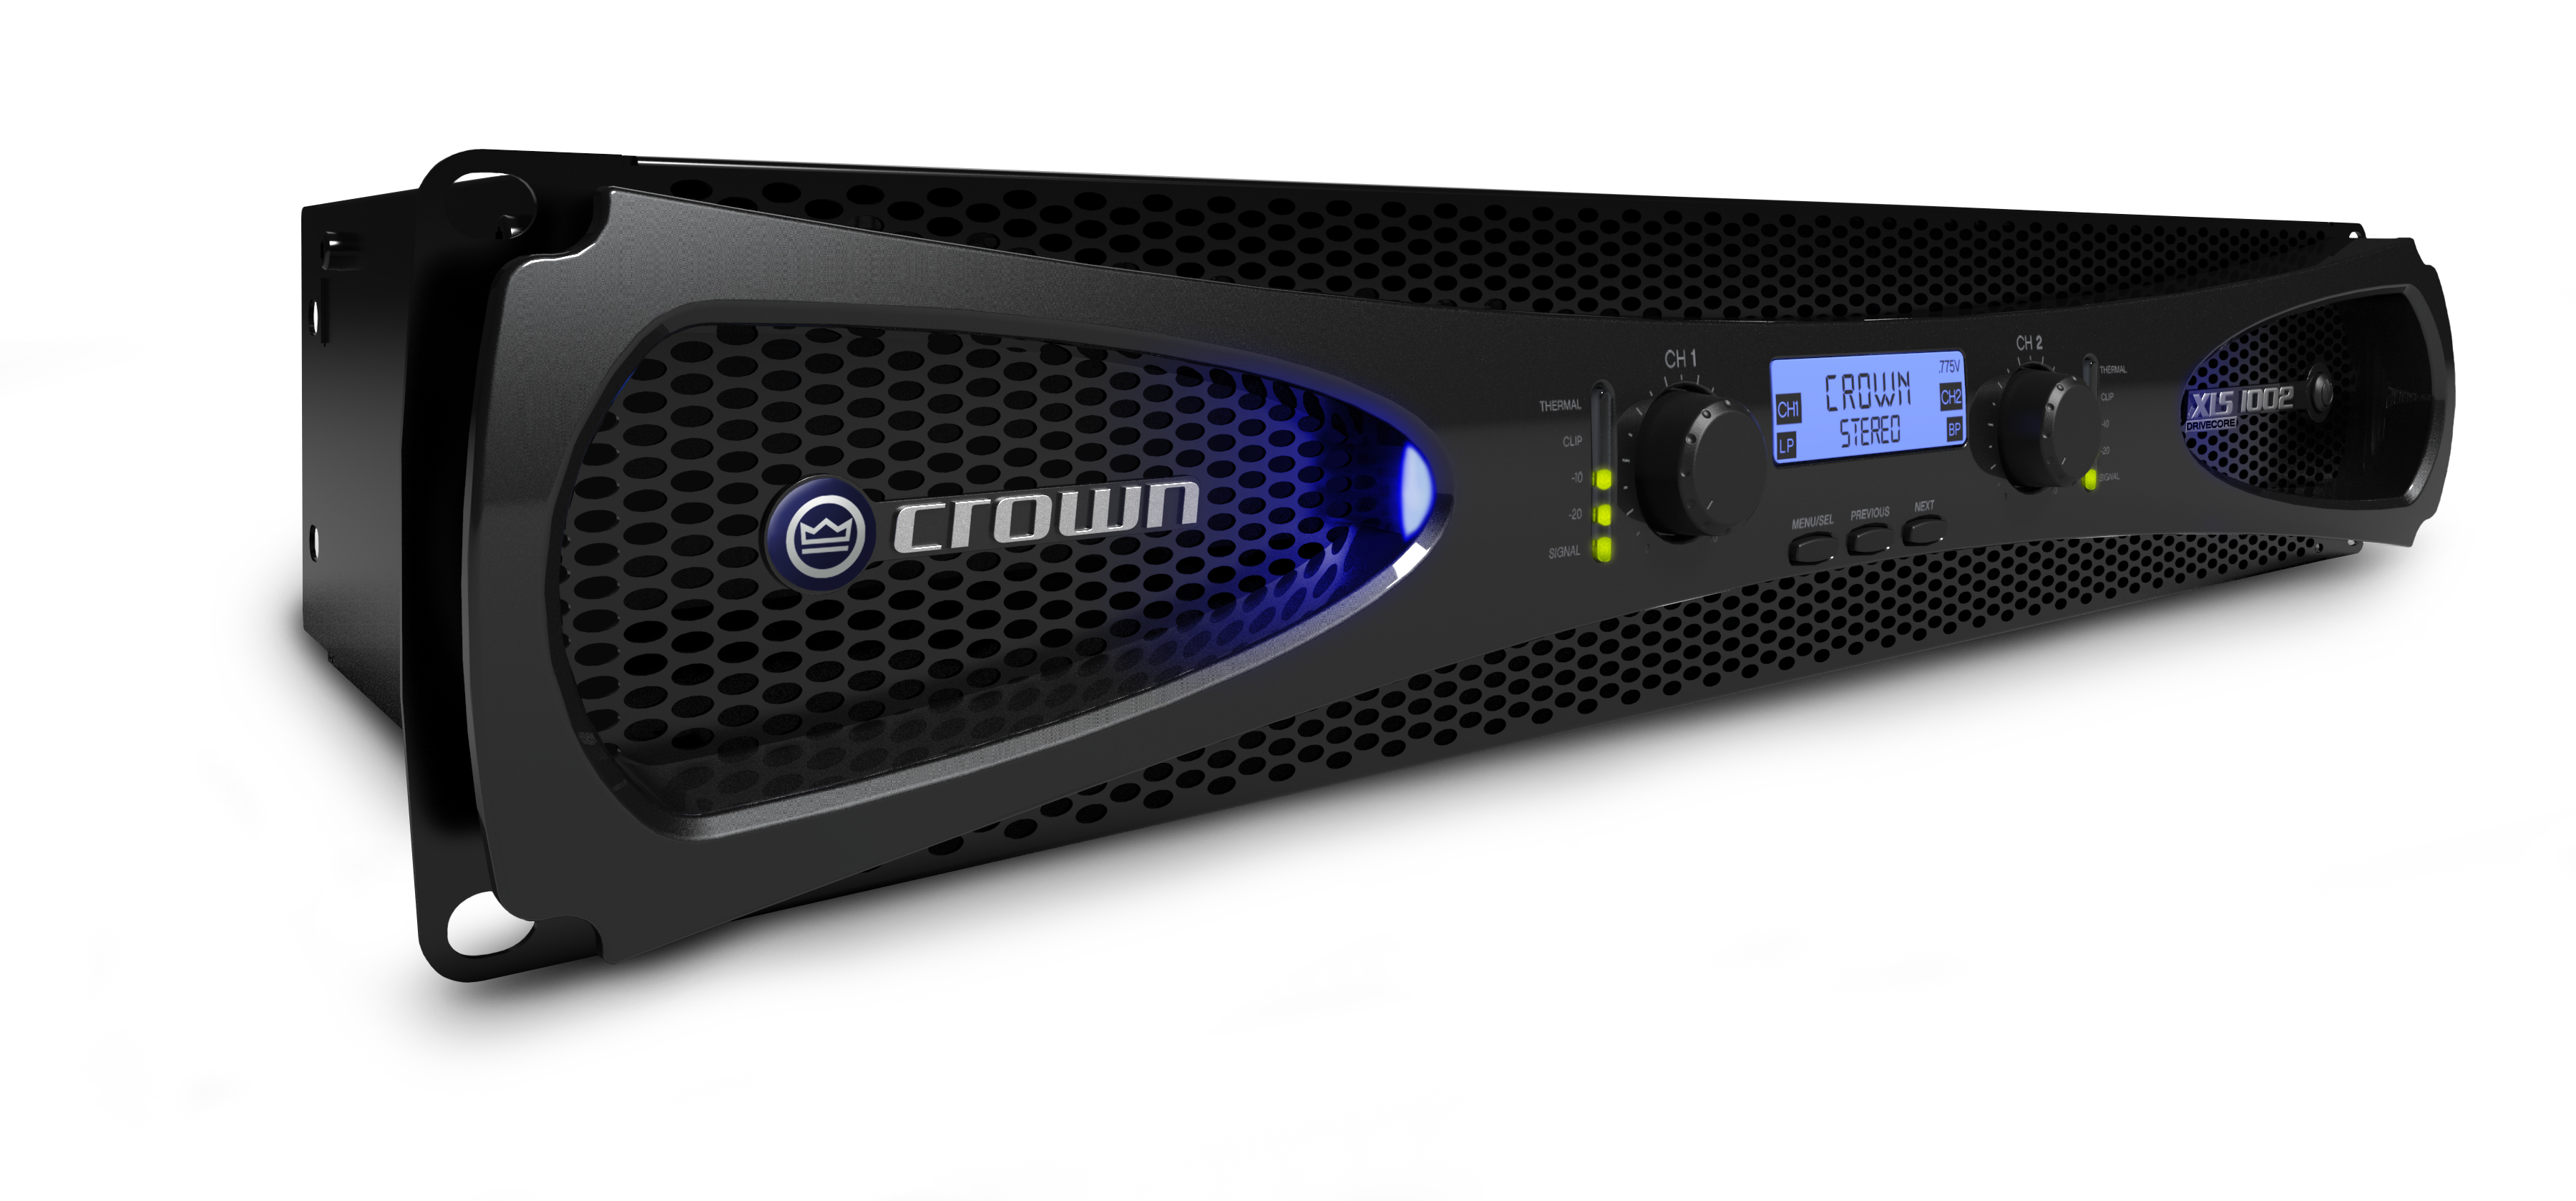 Crown audio xls 1500 and 2000 drivecore amplifiers review | the.